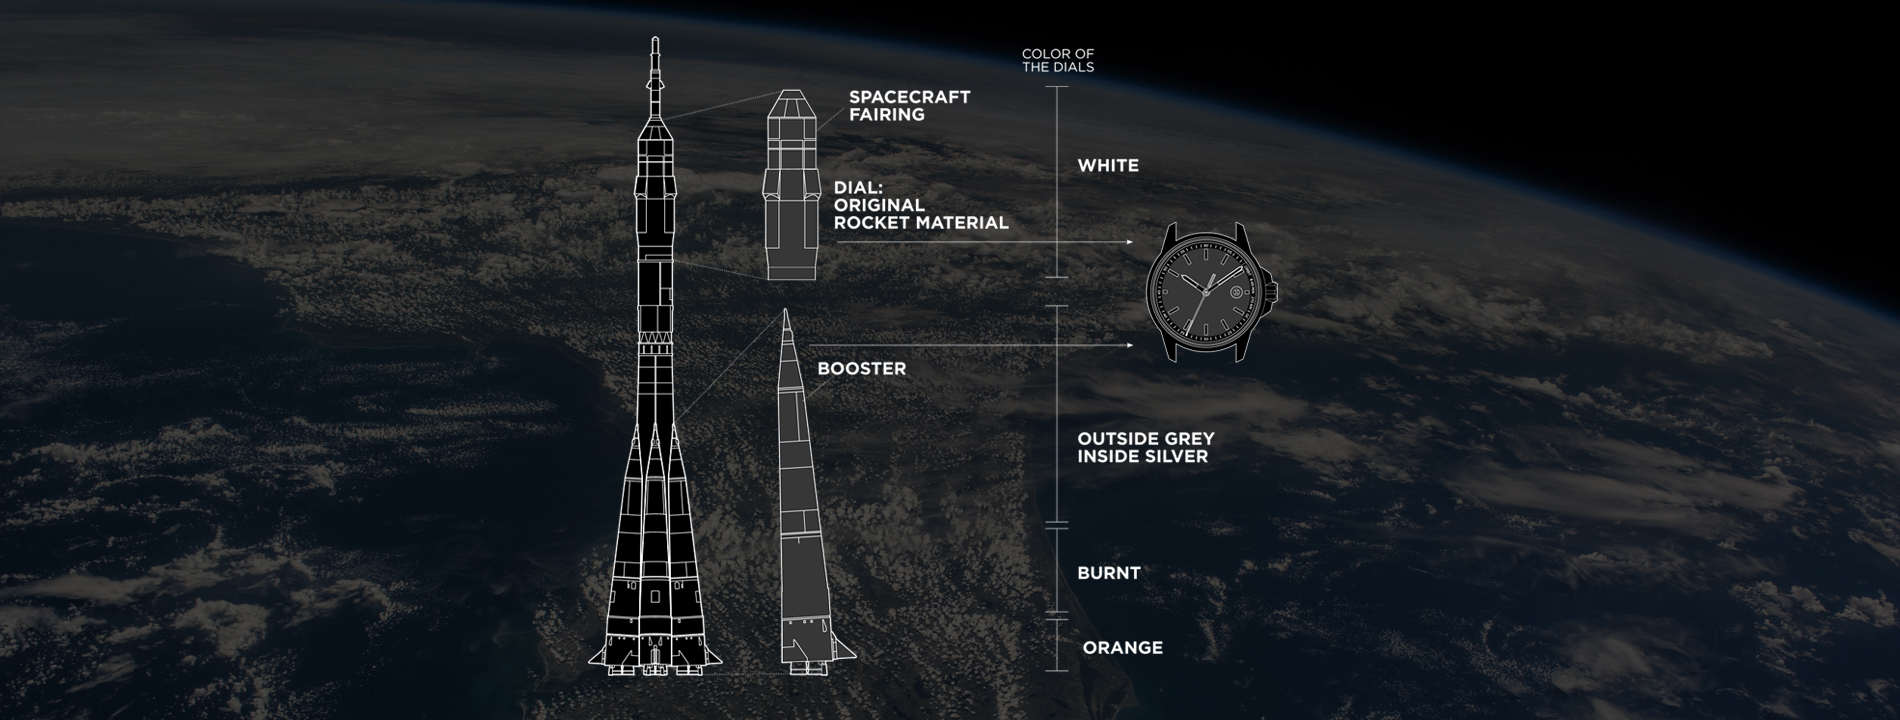 Watches from space rockets - are you serious?